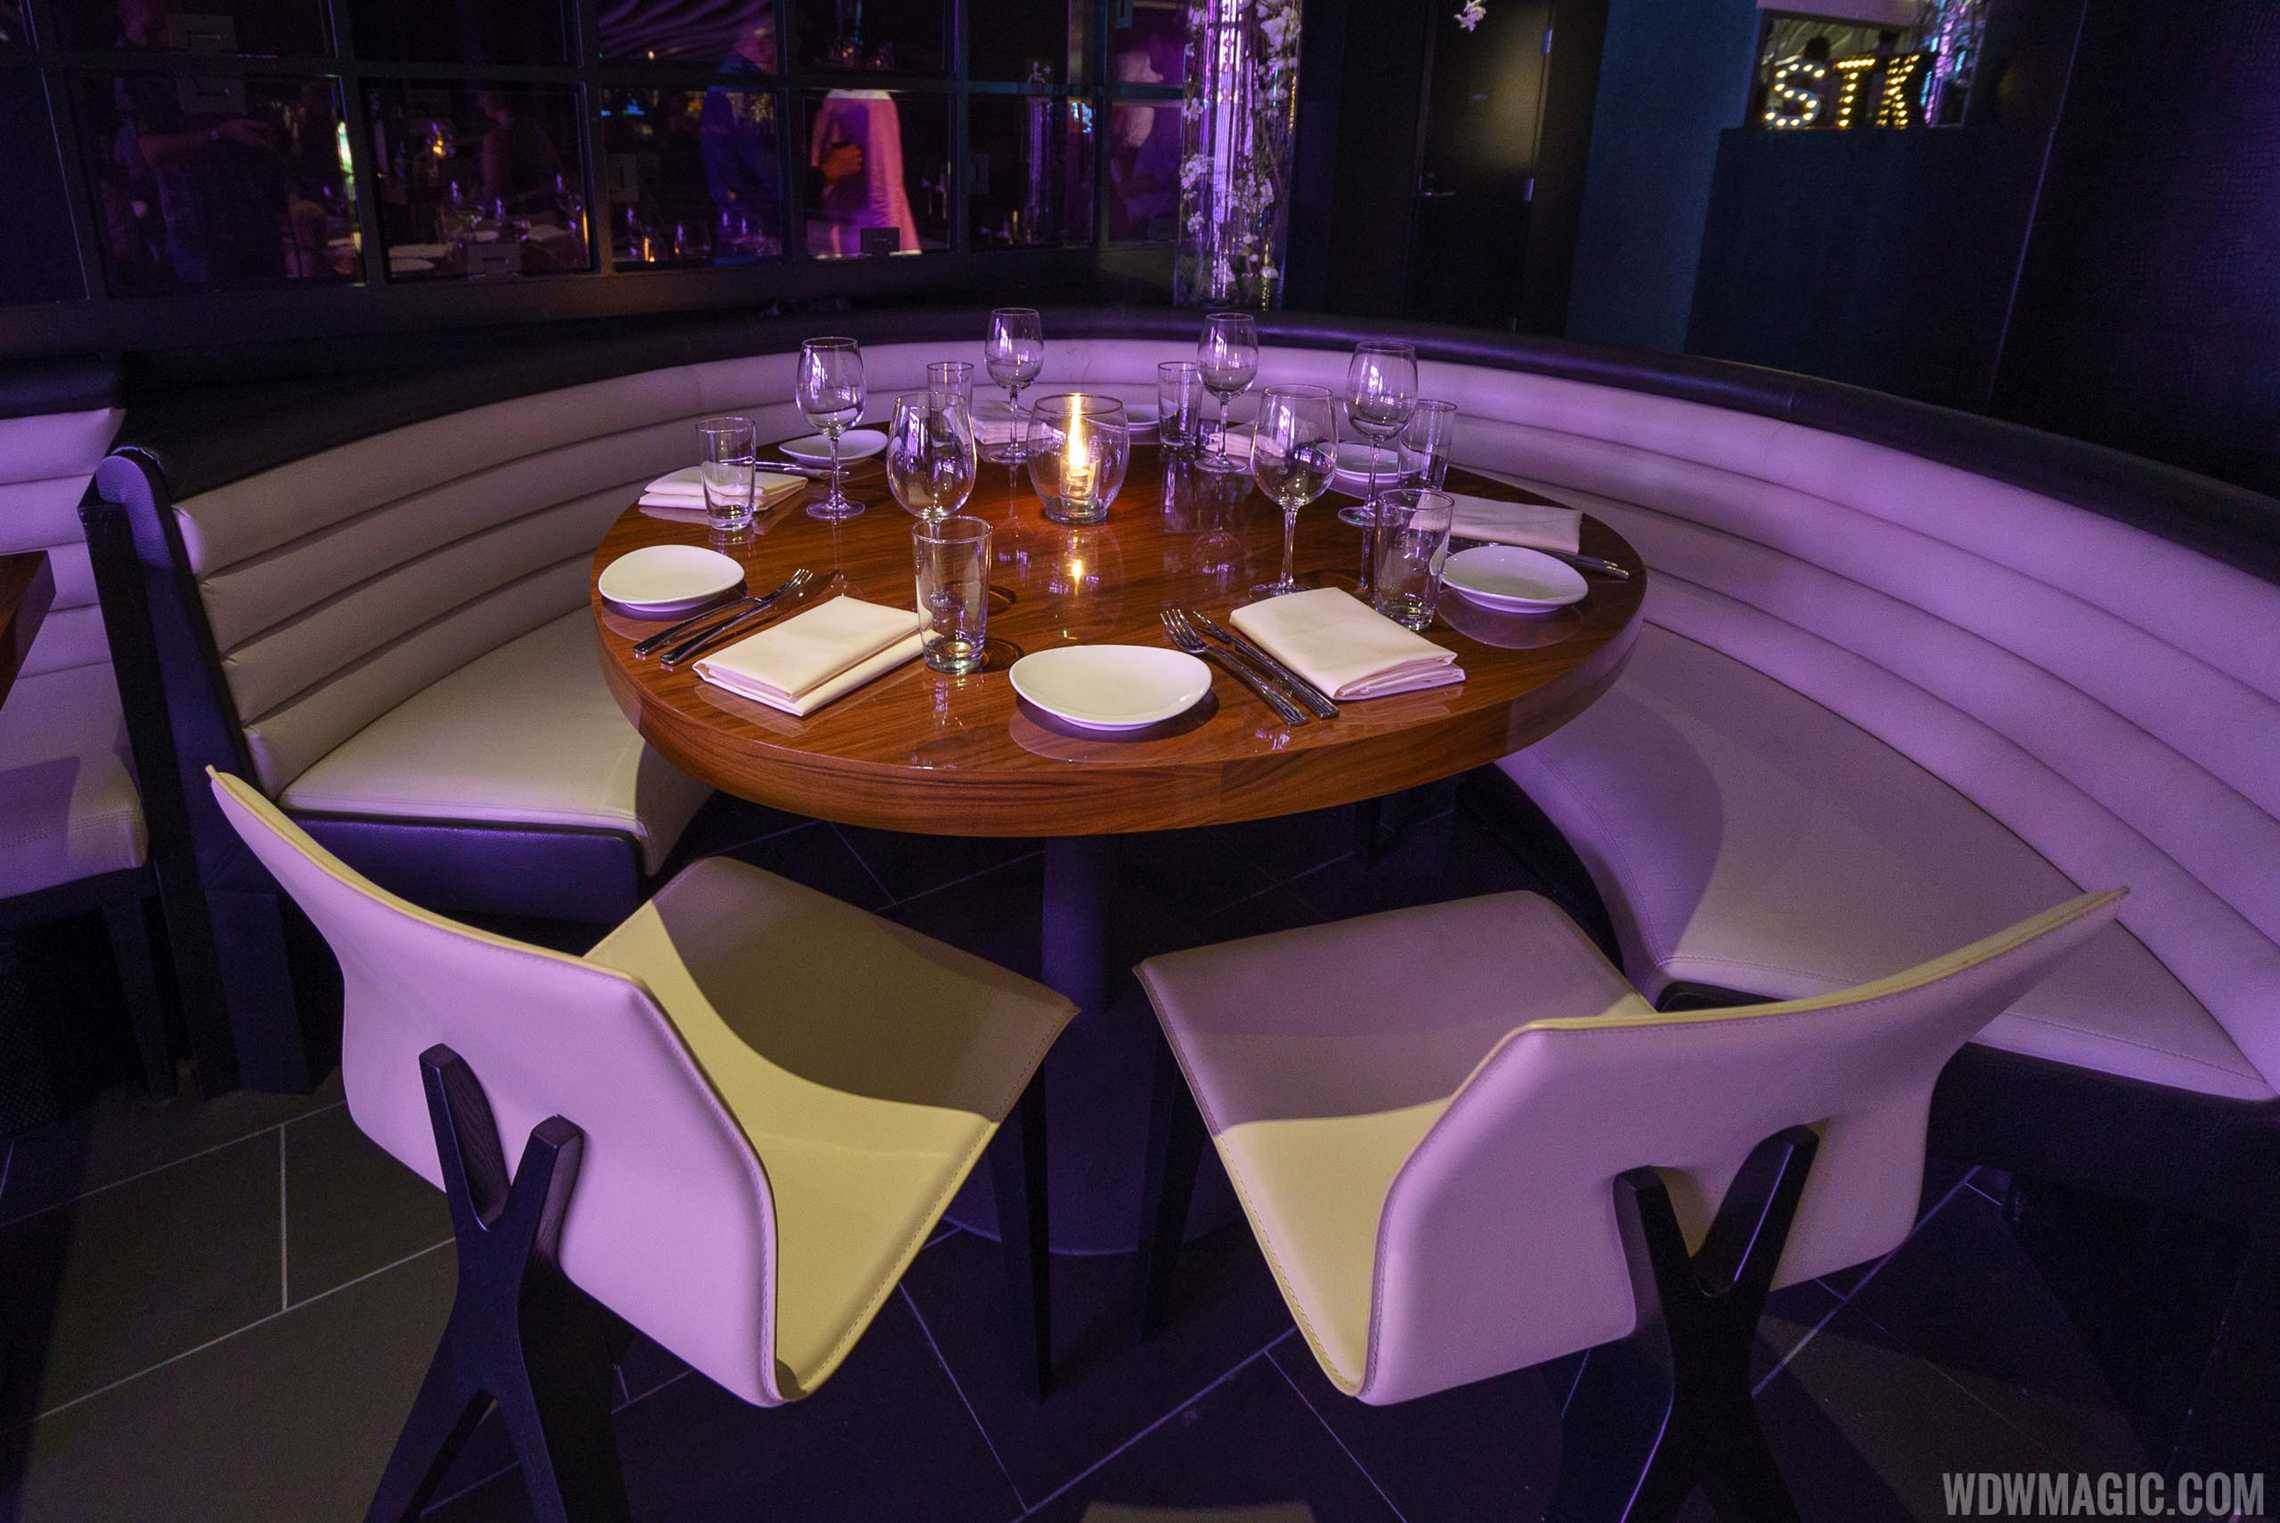 STK Orlando - Lower level table